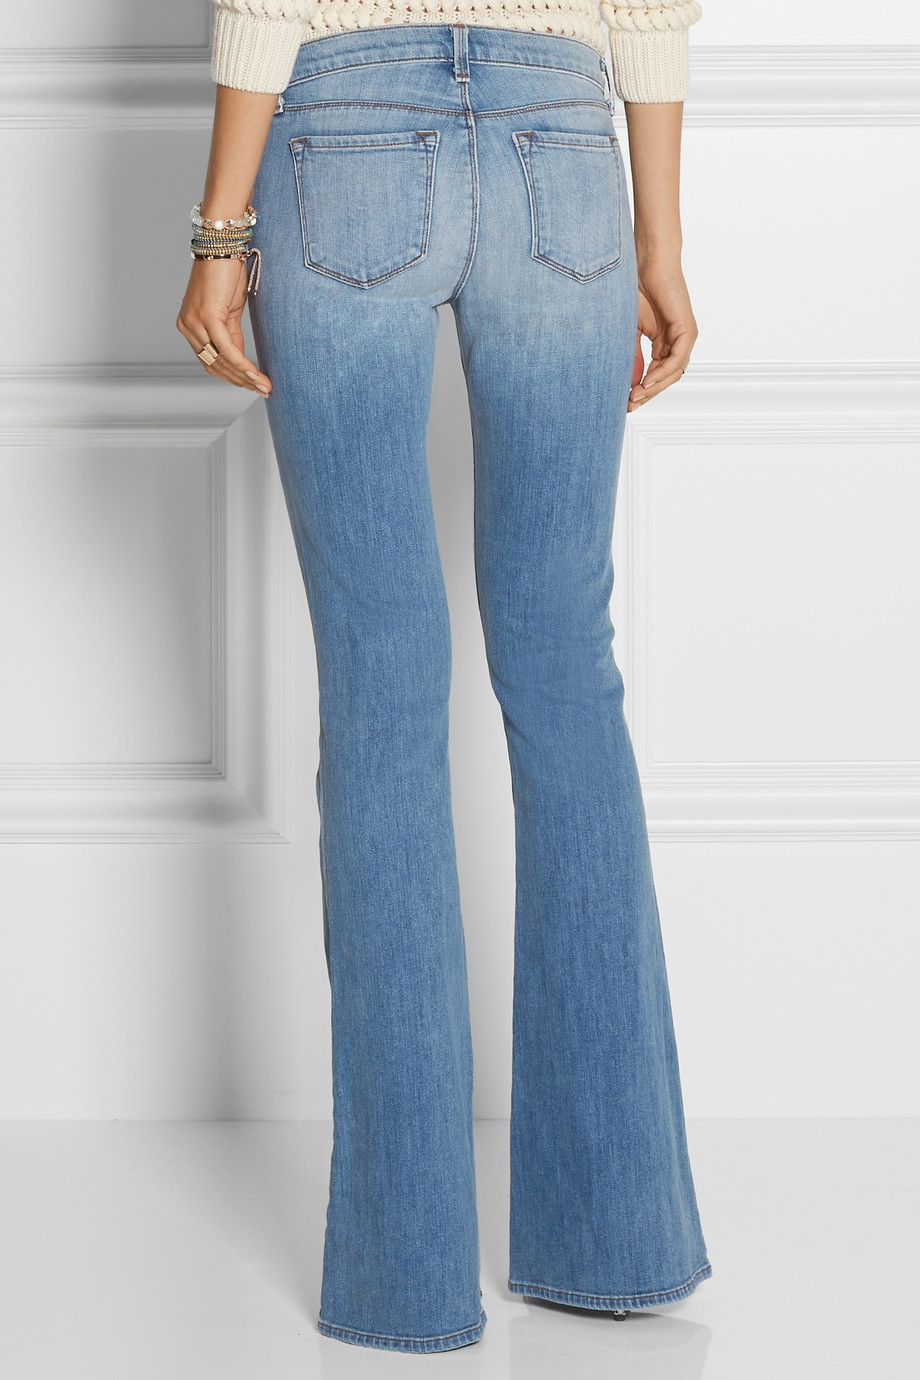 J brand Martini Mid-Rise Flared Jeans in Blue | Lyst